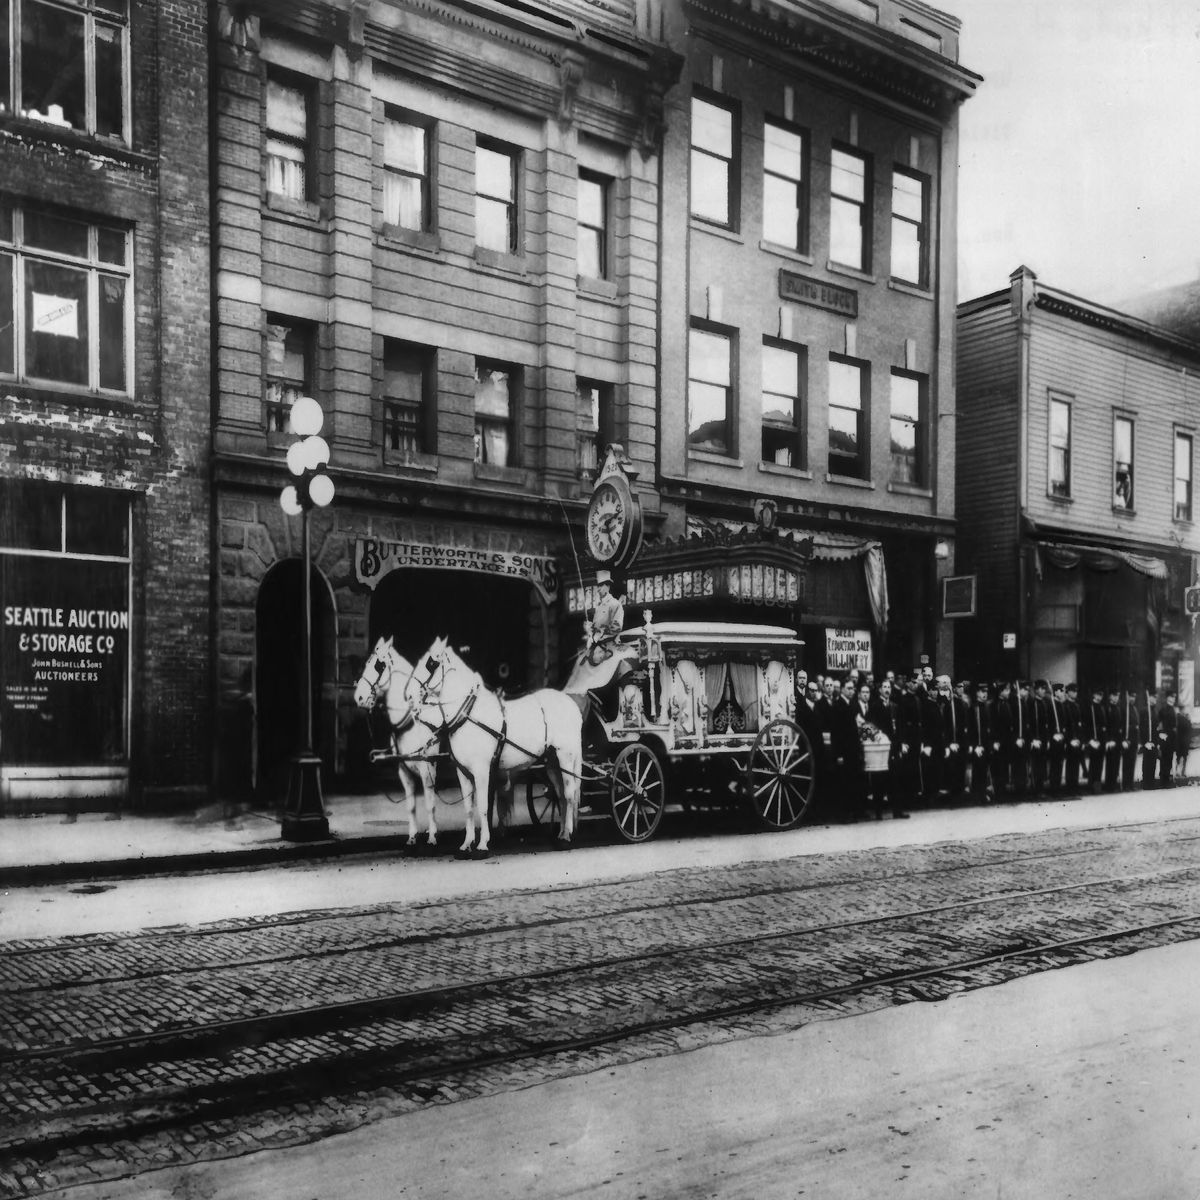 In an old, black-and-white photo, a carriage drawn by two horses is followed by rows of people dressed in black in front of brick three-story buildings.